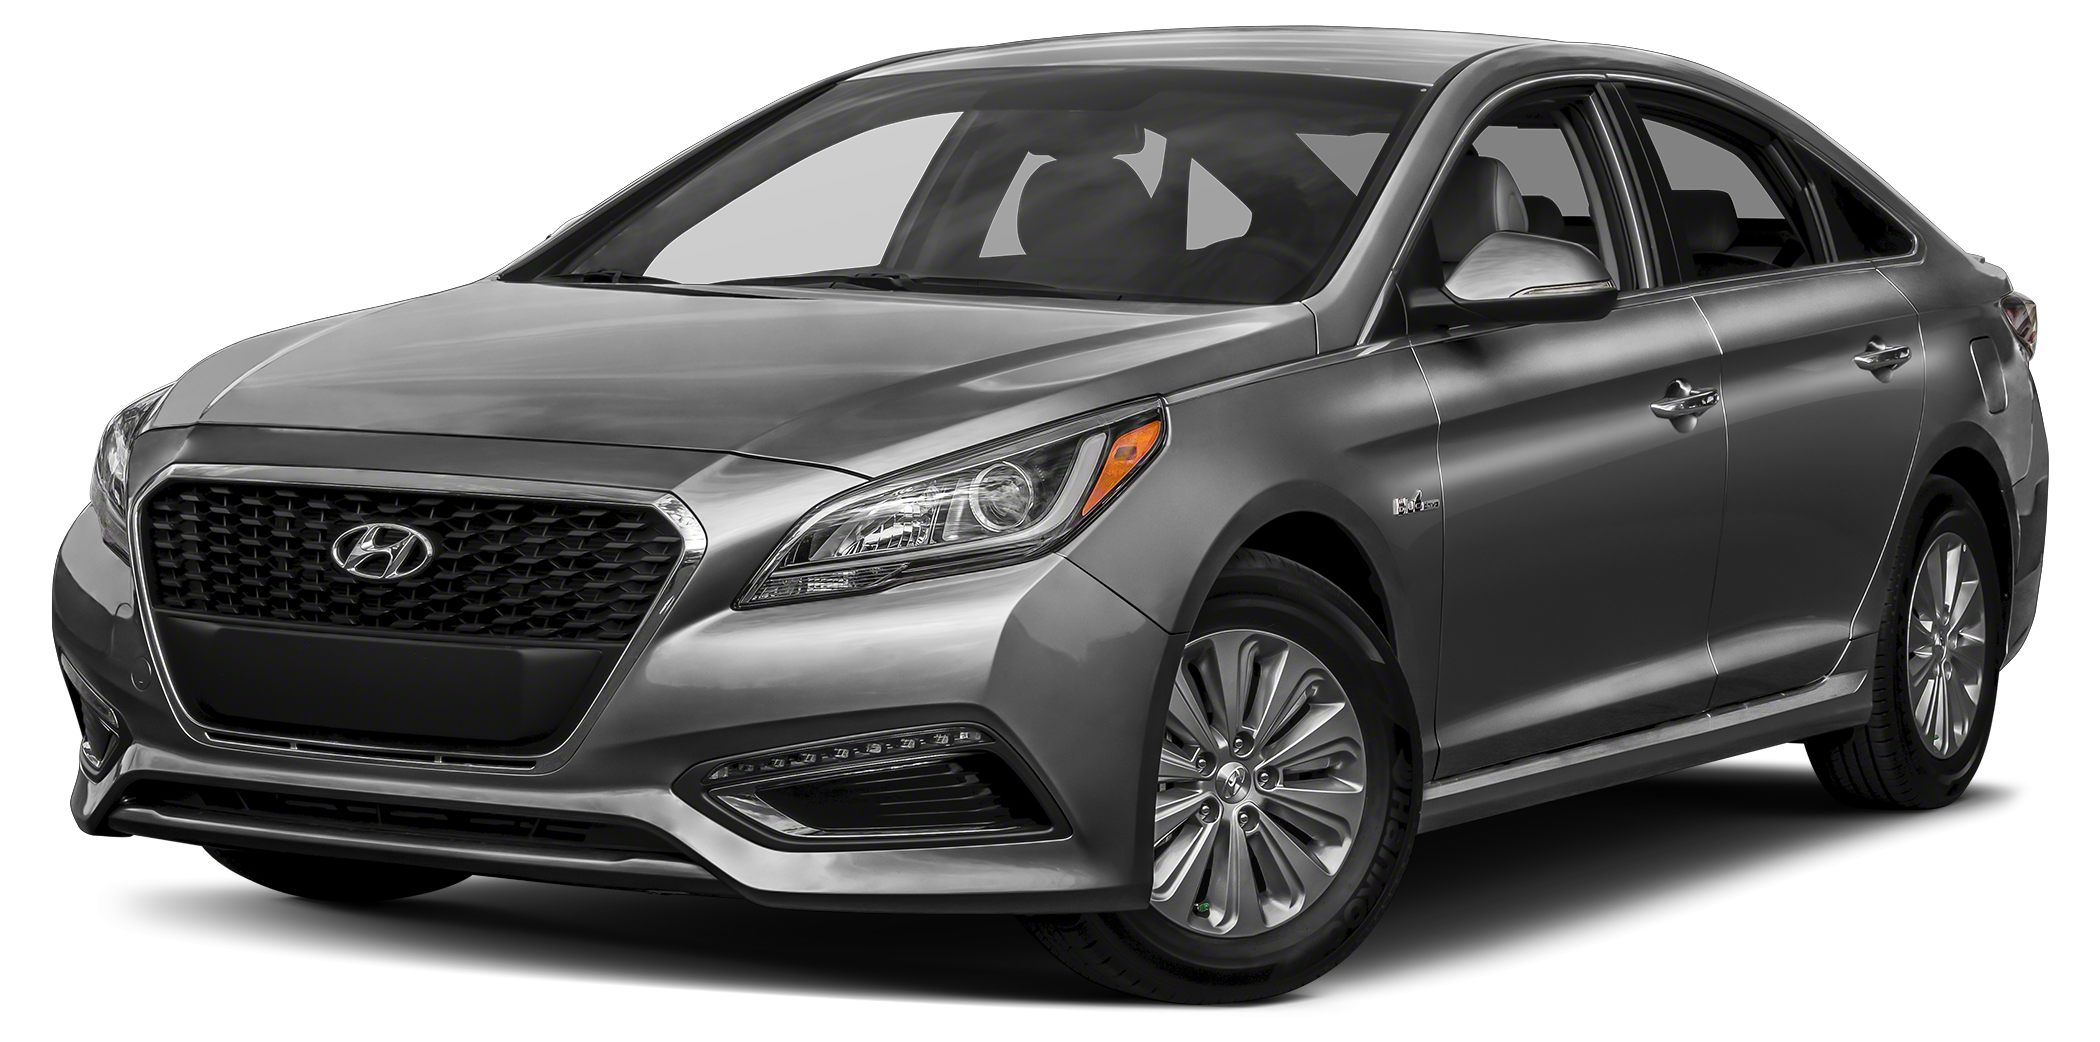 2017 Hyundai Sonata Hybrid SE Transparency is our goal The Our Cost Price includes current manufa